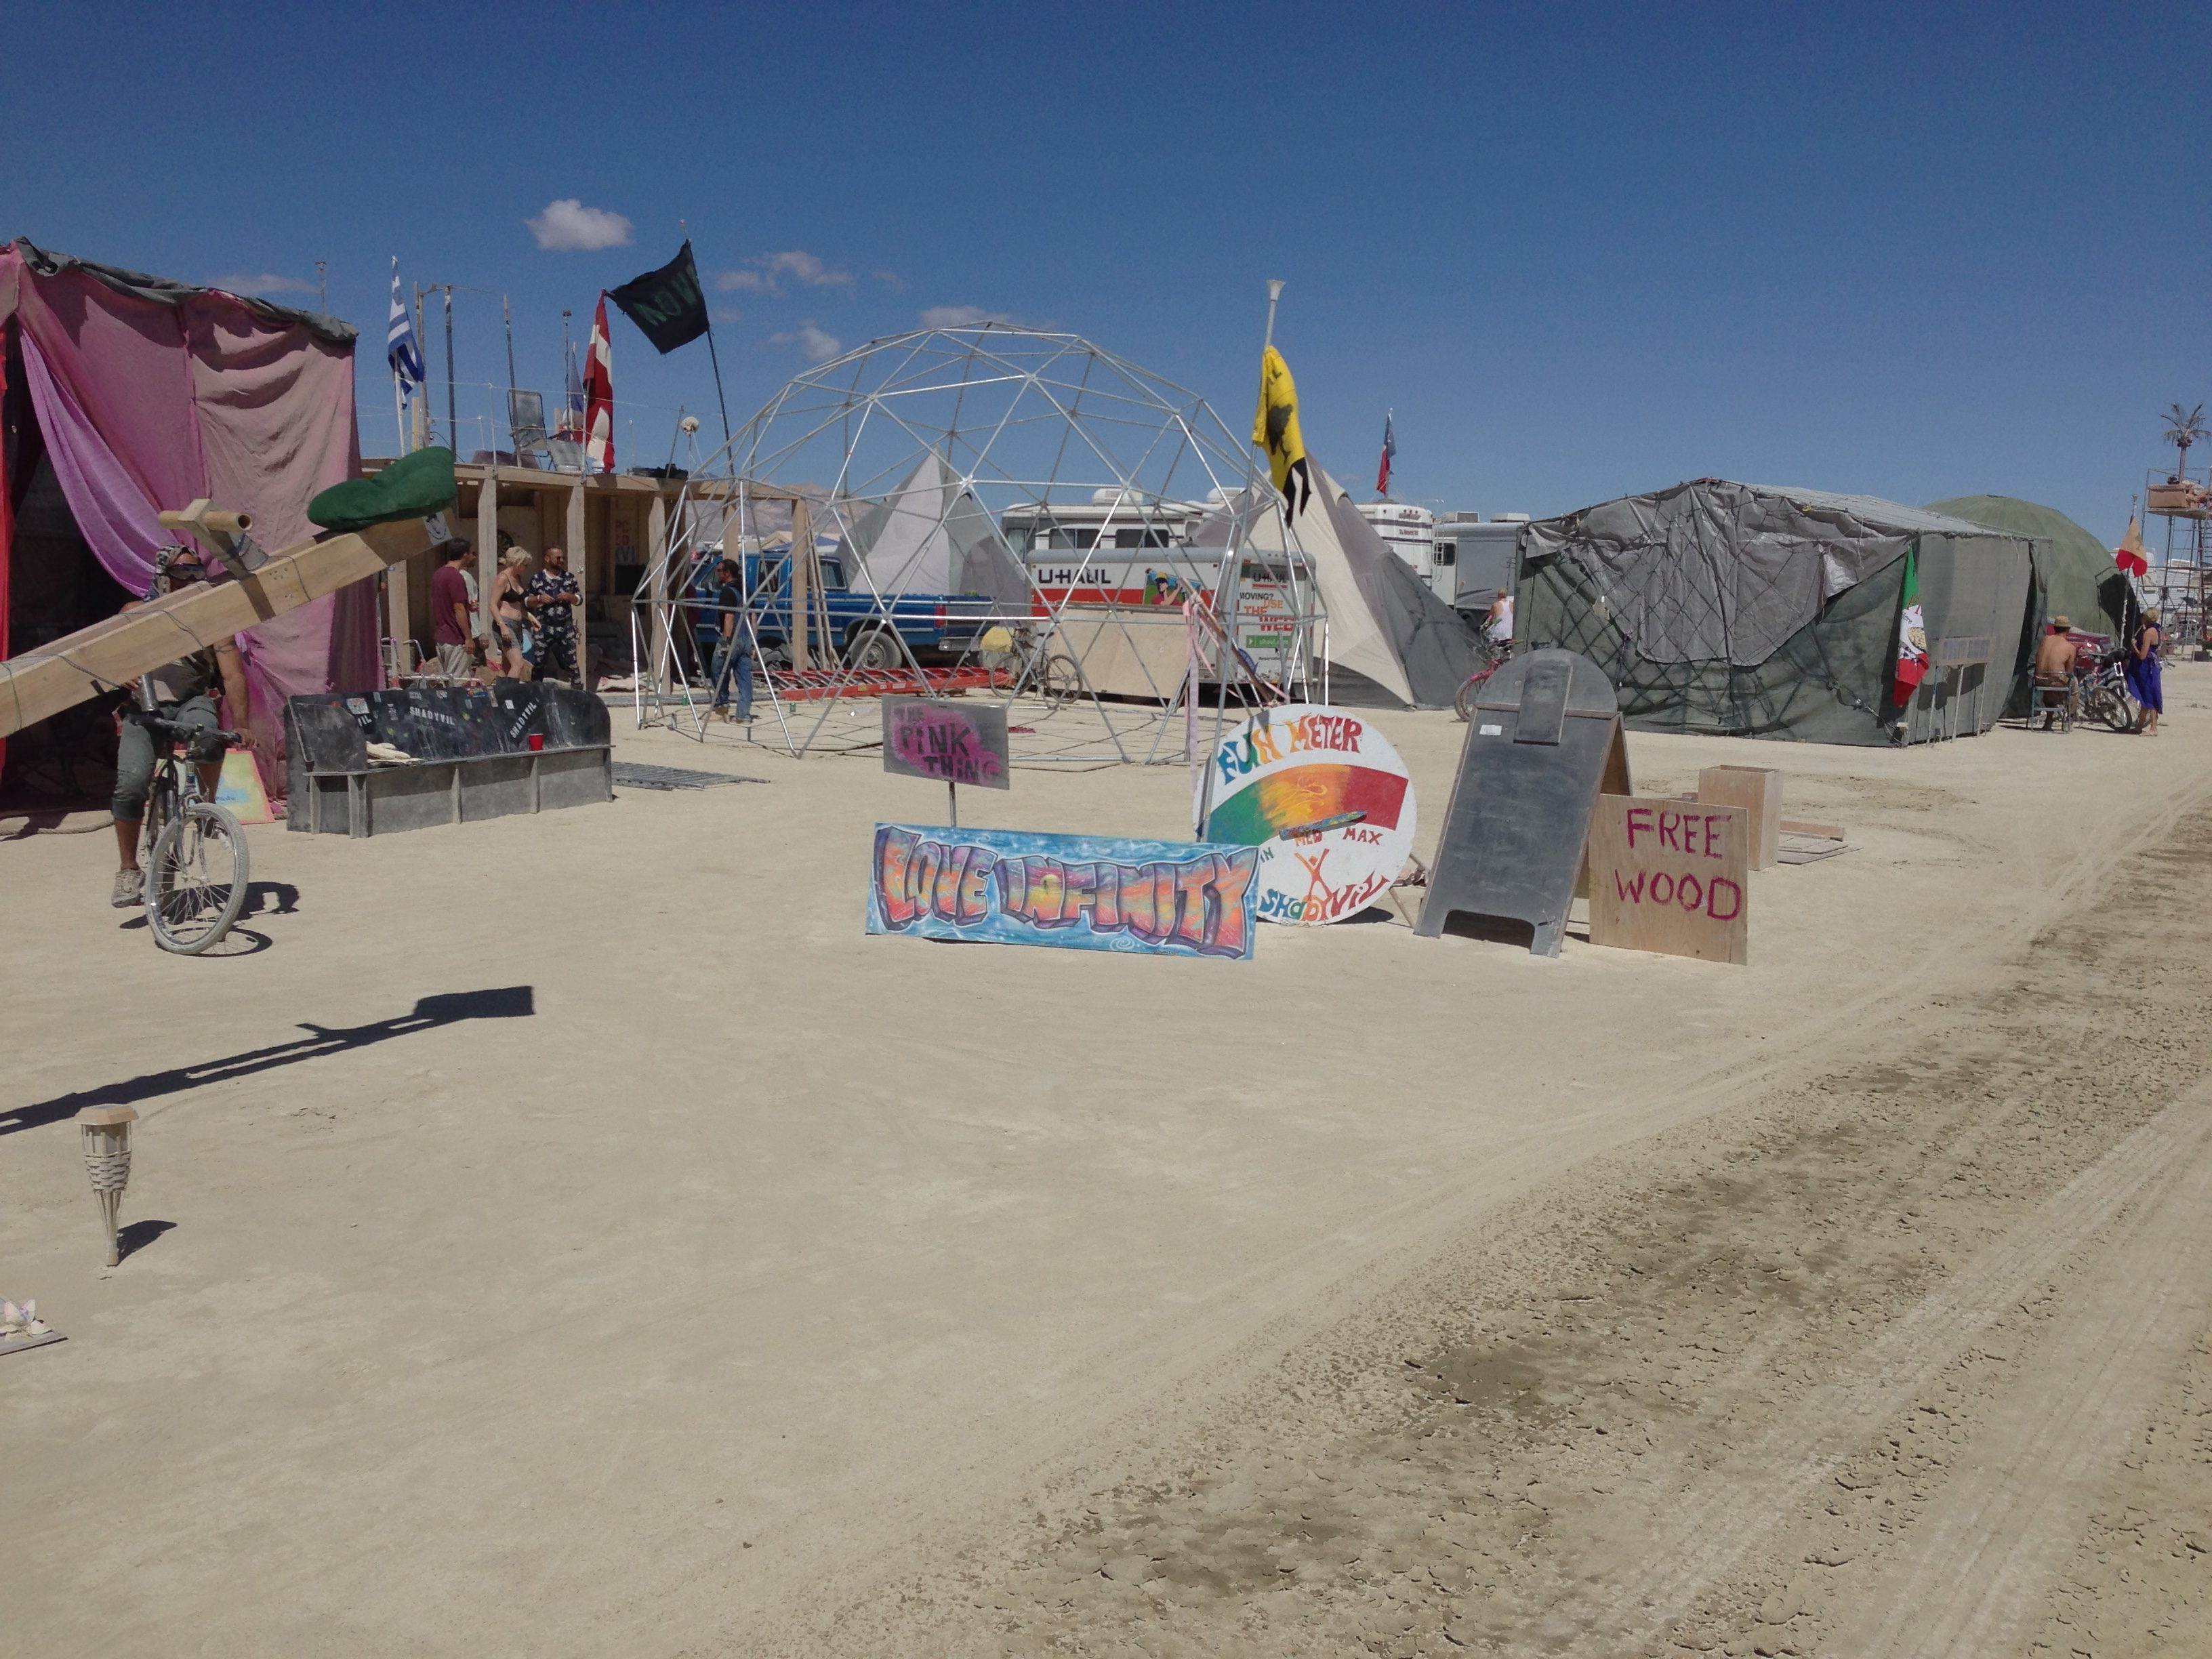 Somehow, this collection of signs seems to capture the essence of Burning Man.